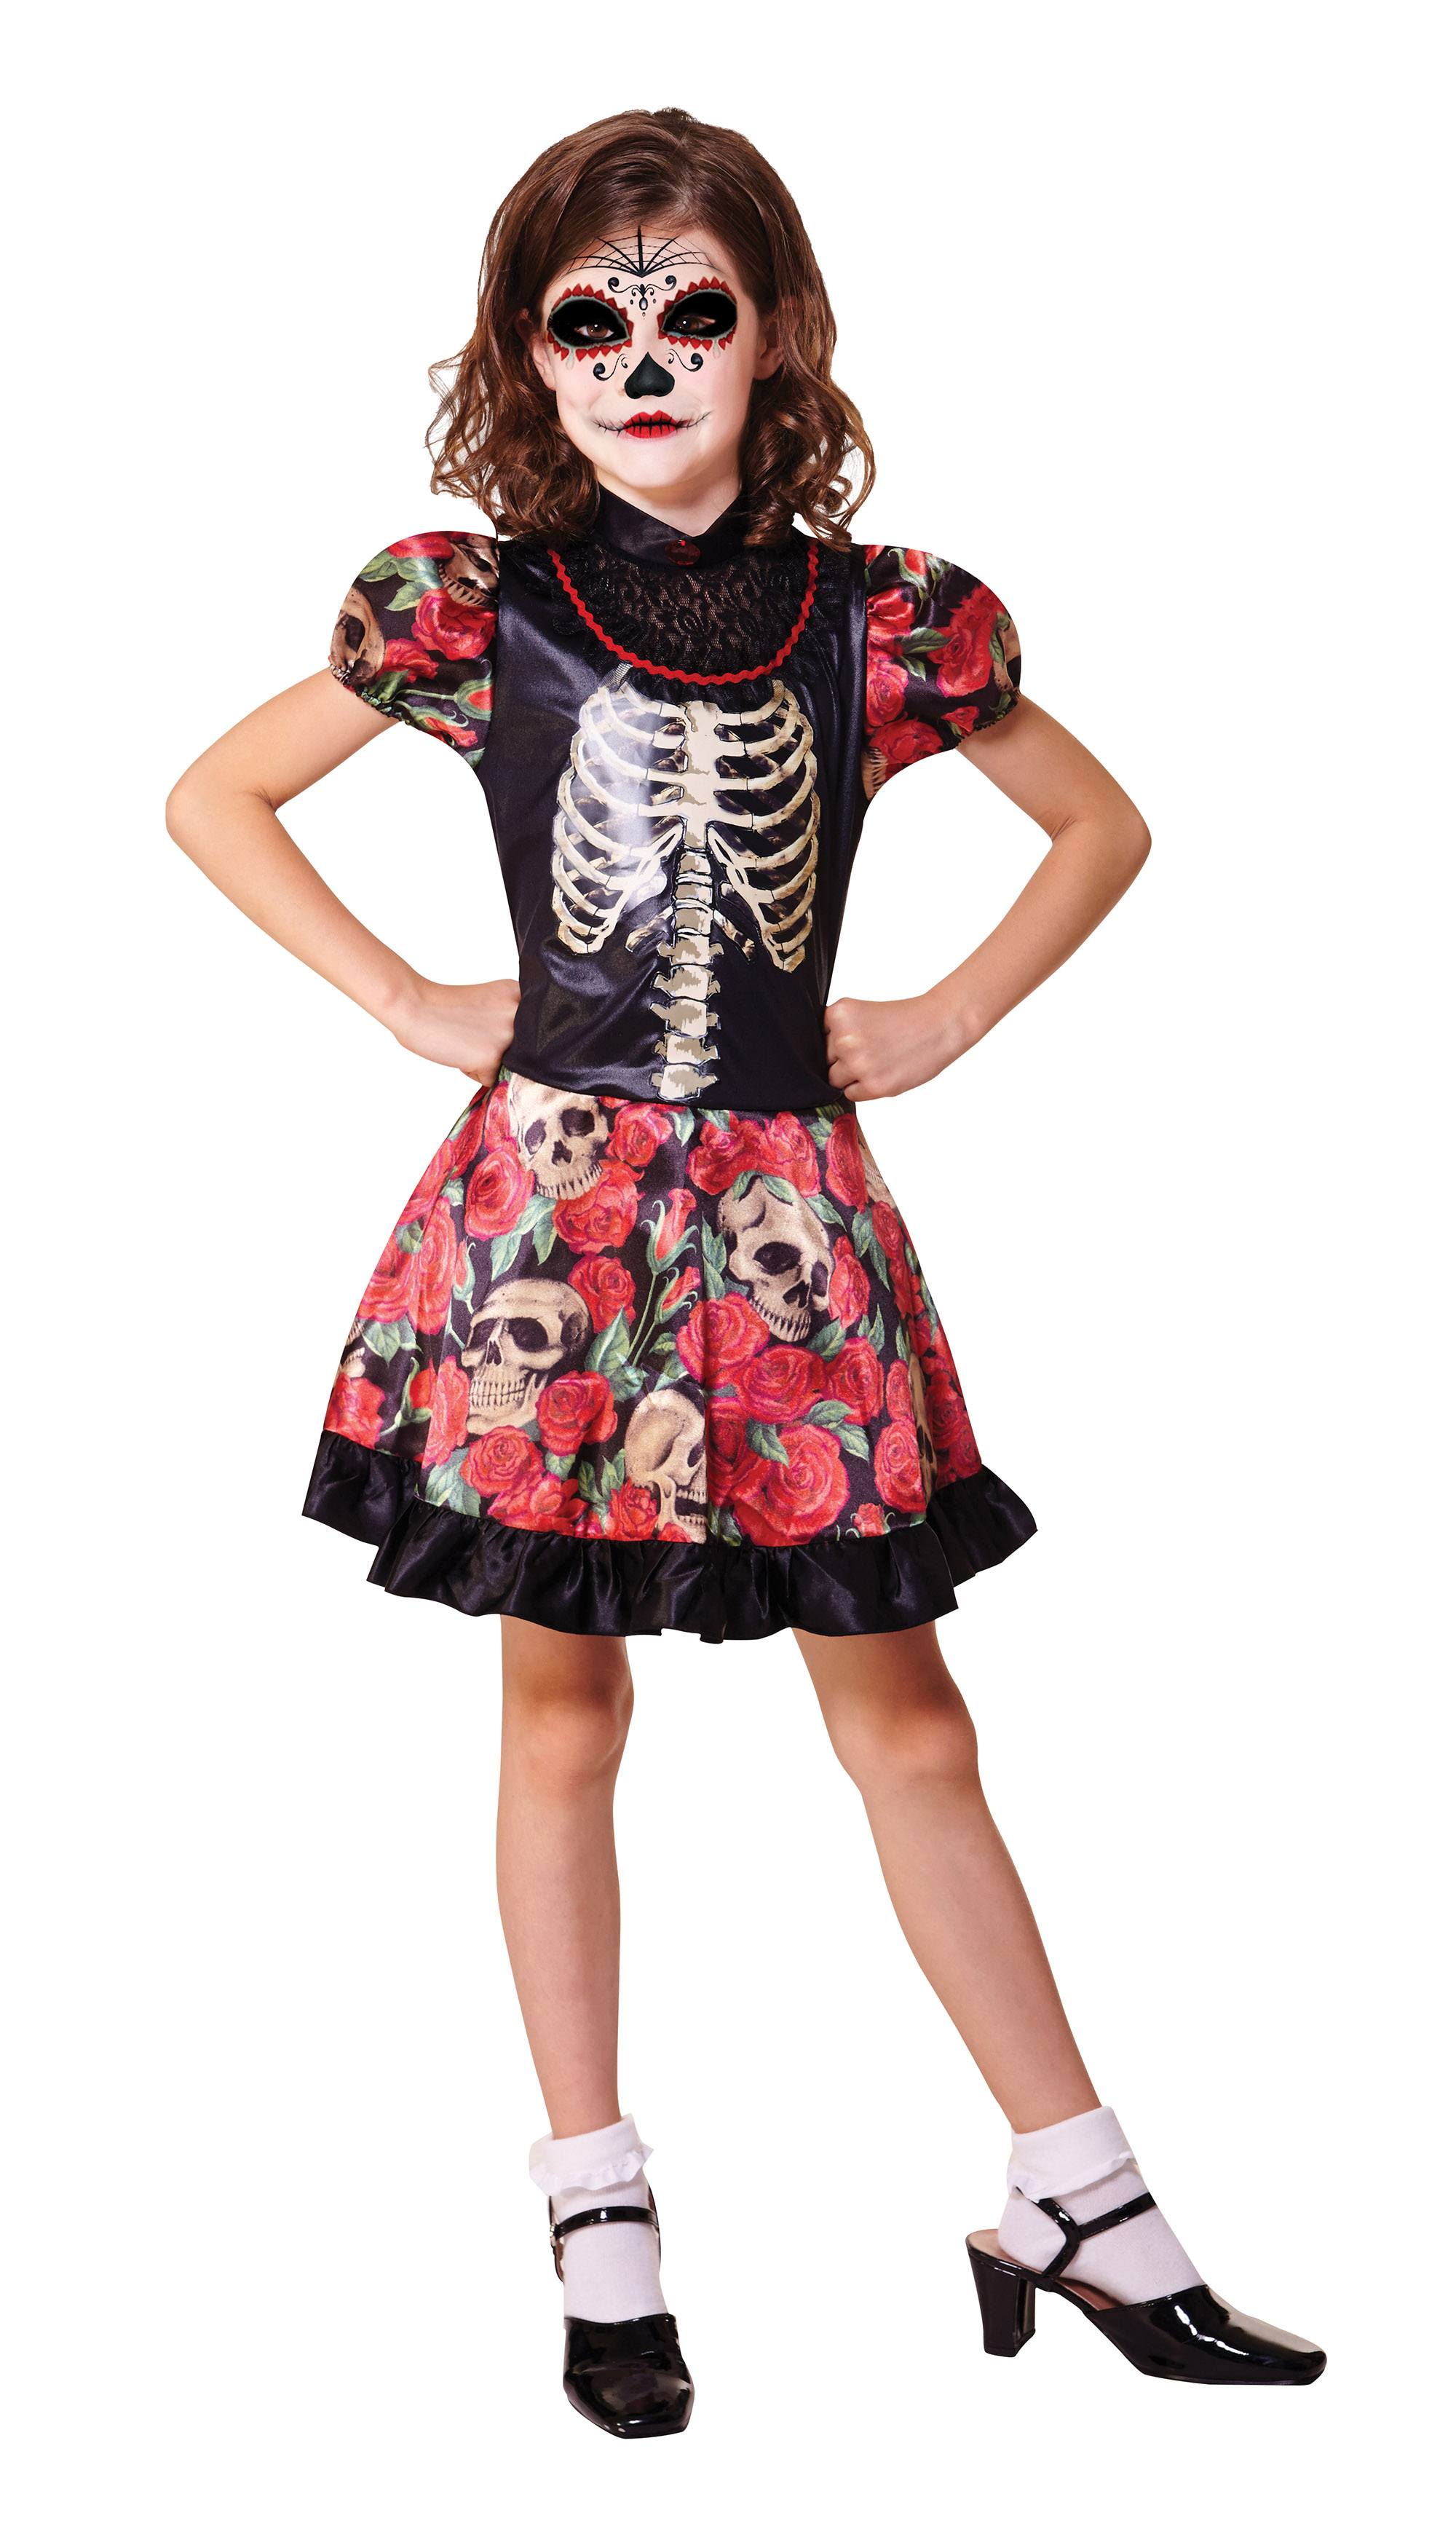 Halloween 134.Details About New Halloween Day Of The Dead Girl 134 146cm Girls Childrens Costume